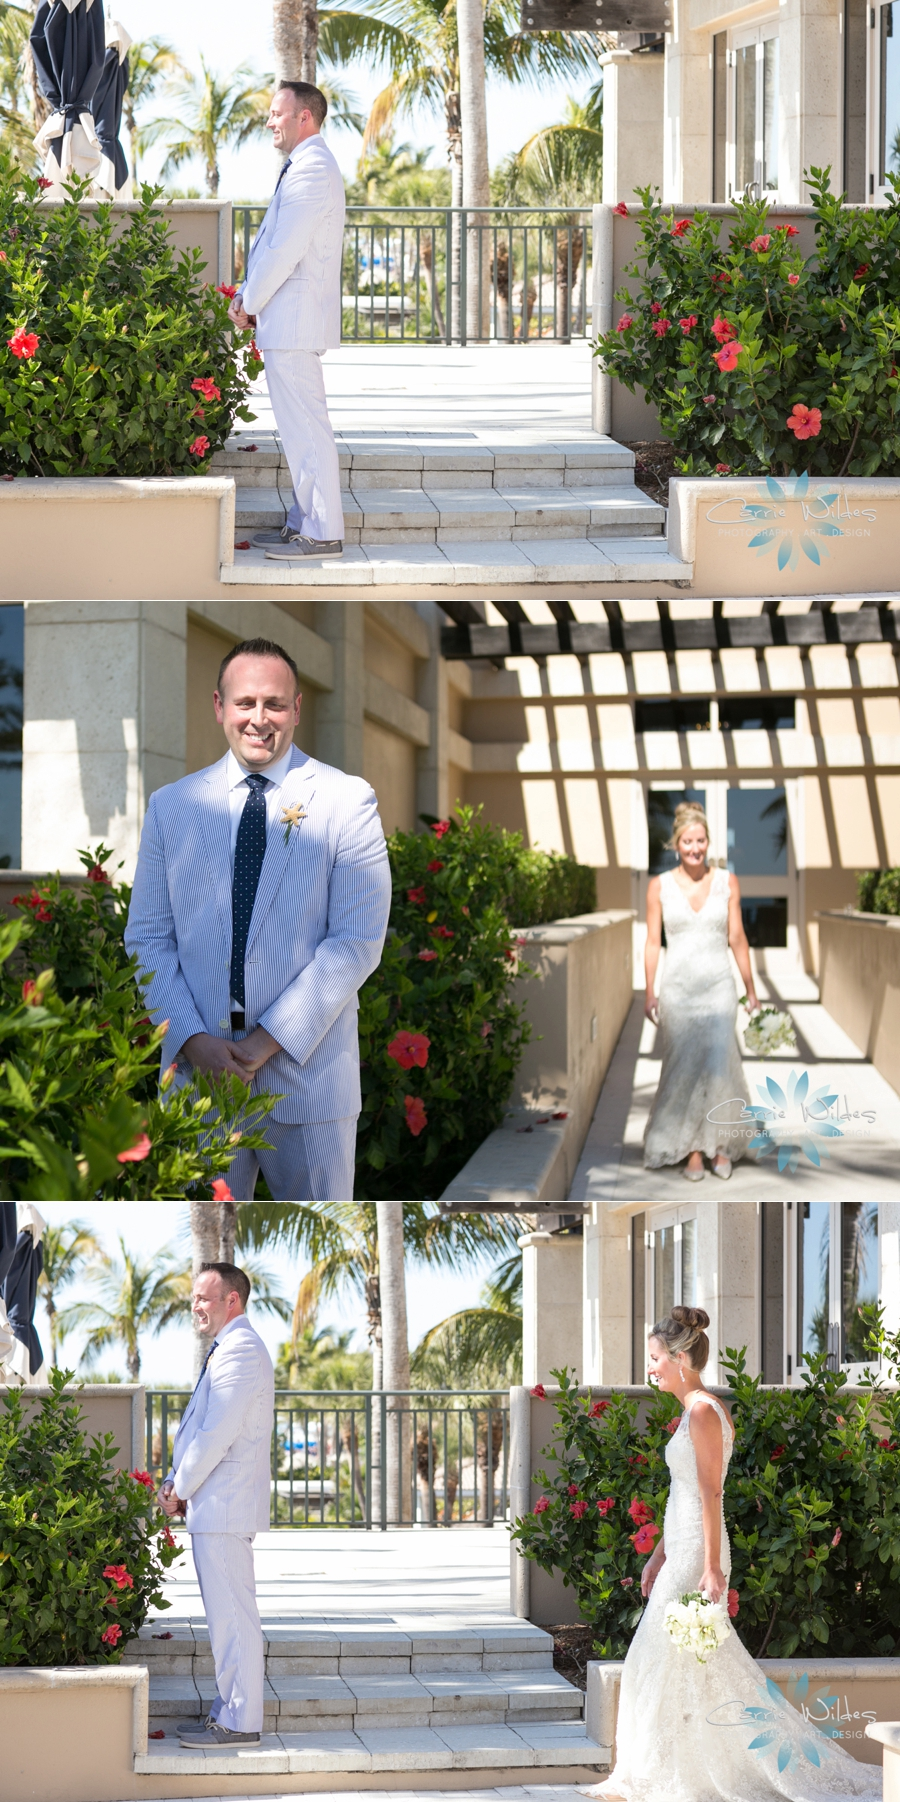 3_17_18 Annie and Justin Ritz Carlton Sarasota Wedding_0010.jpg